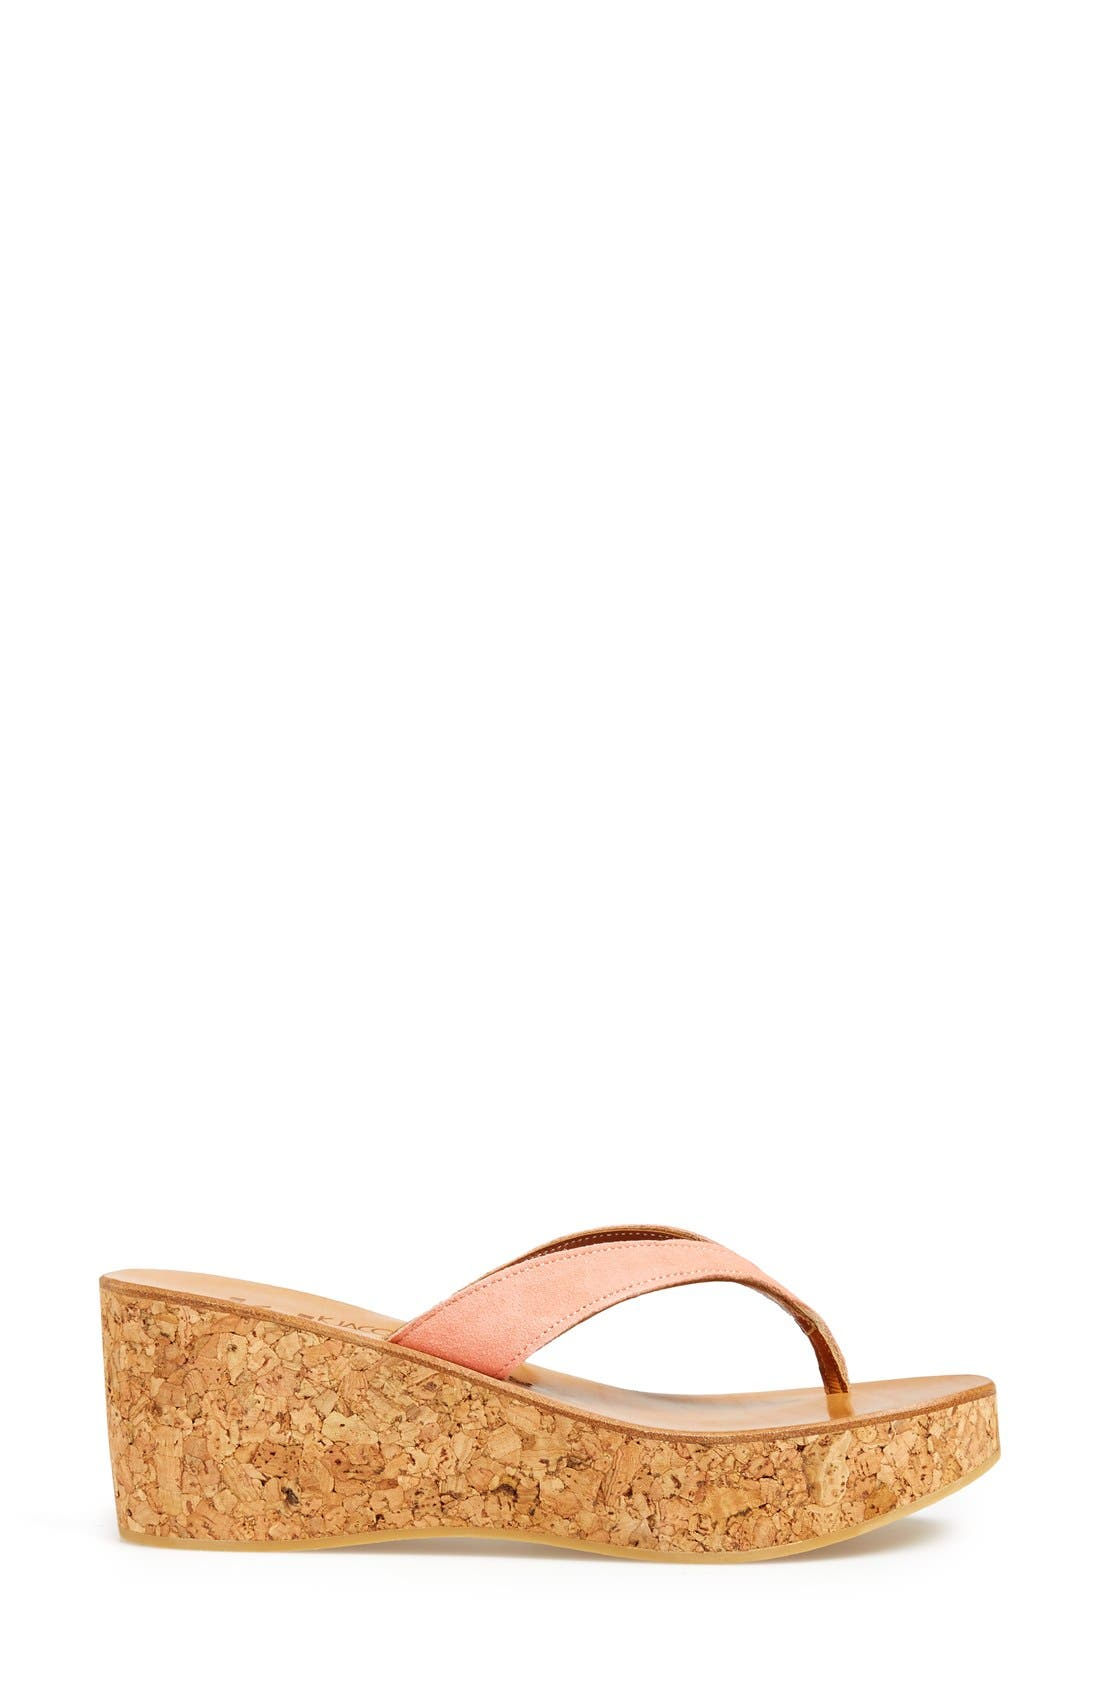 Alternate Image 4  - K.Jacques St. Tropez 'Diorite' Wedge Sandal (Women)